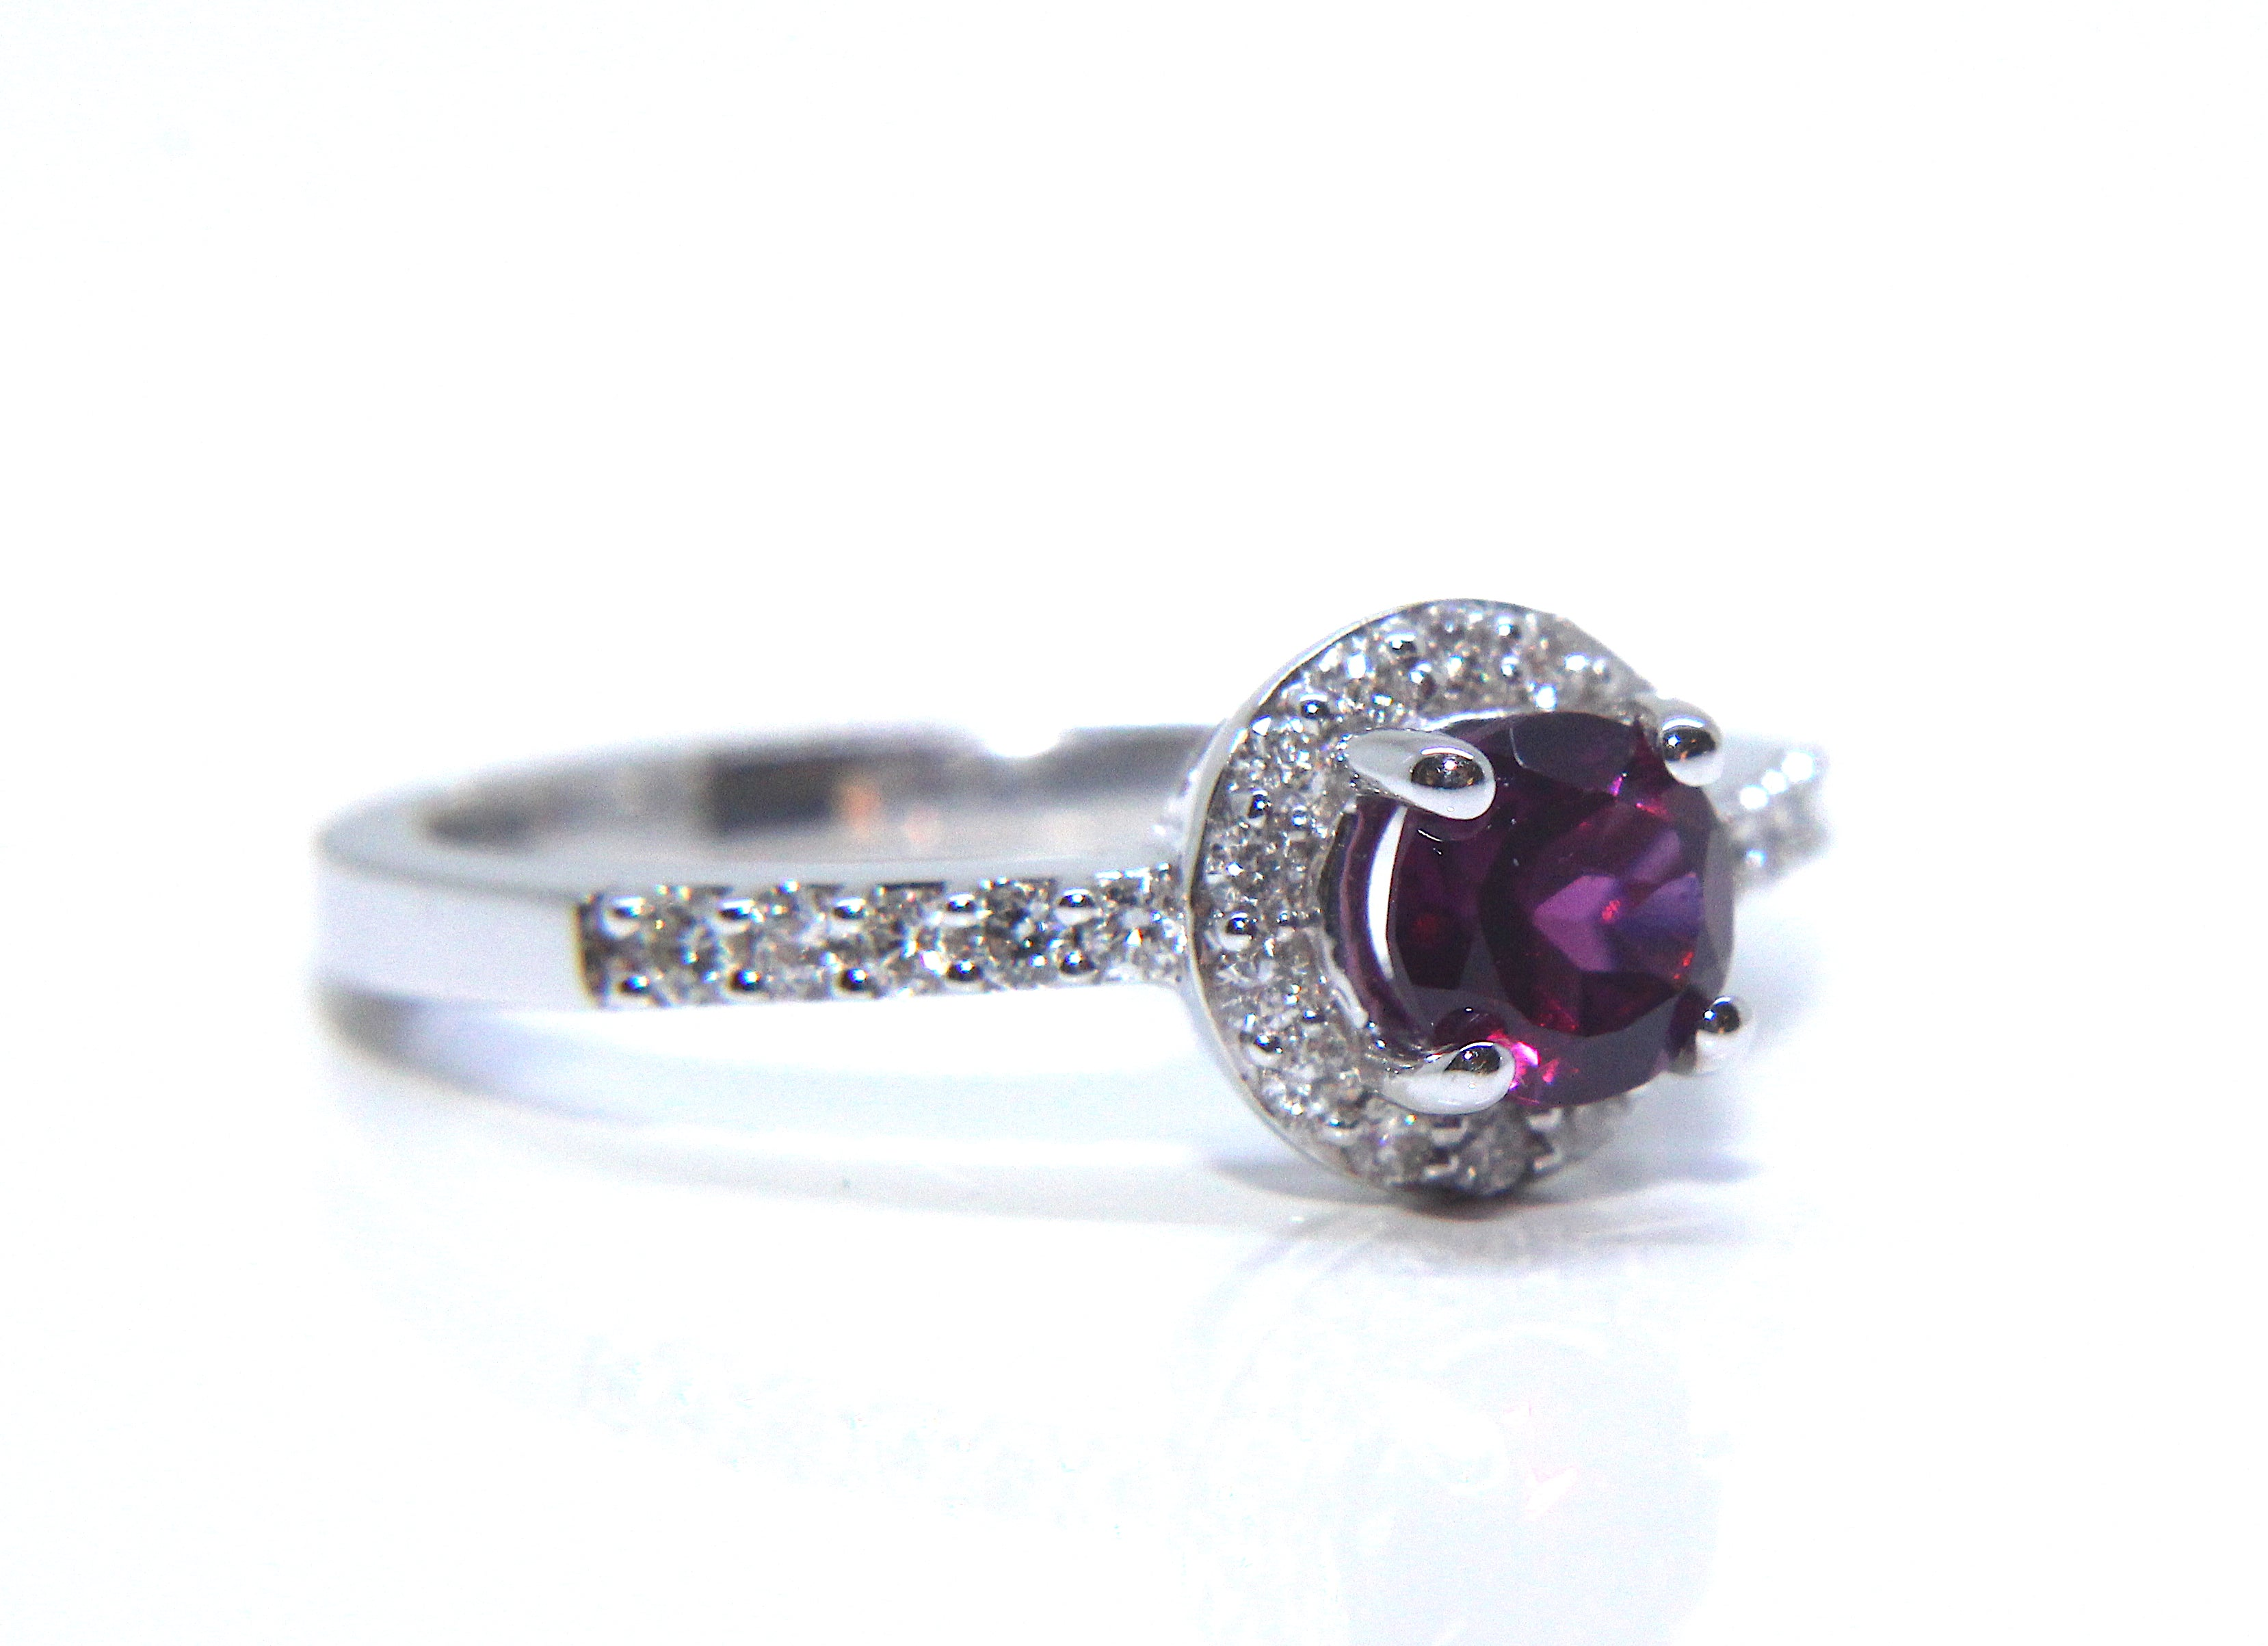 cotton ben raspberry size candy rhodolite engagement jewelers le full vian garnet p garelick rings ring from amethyst